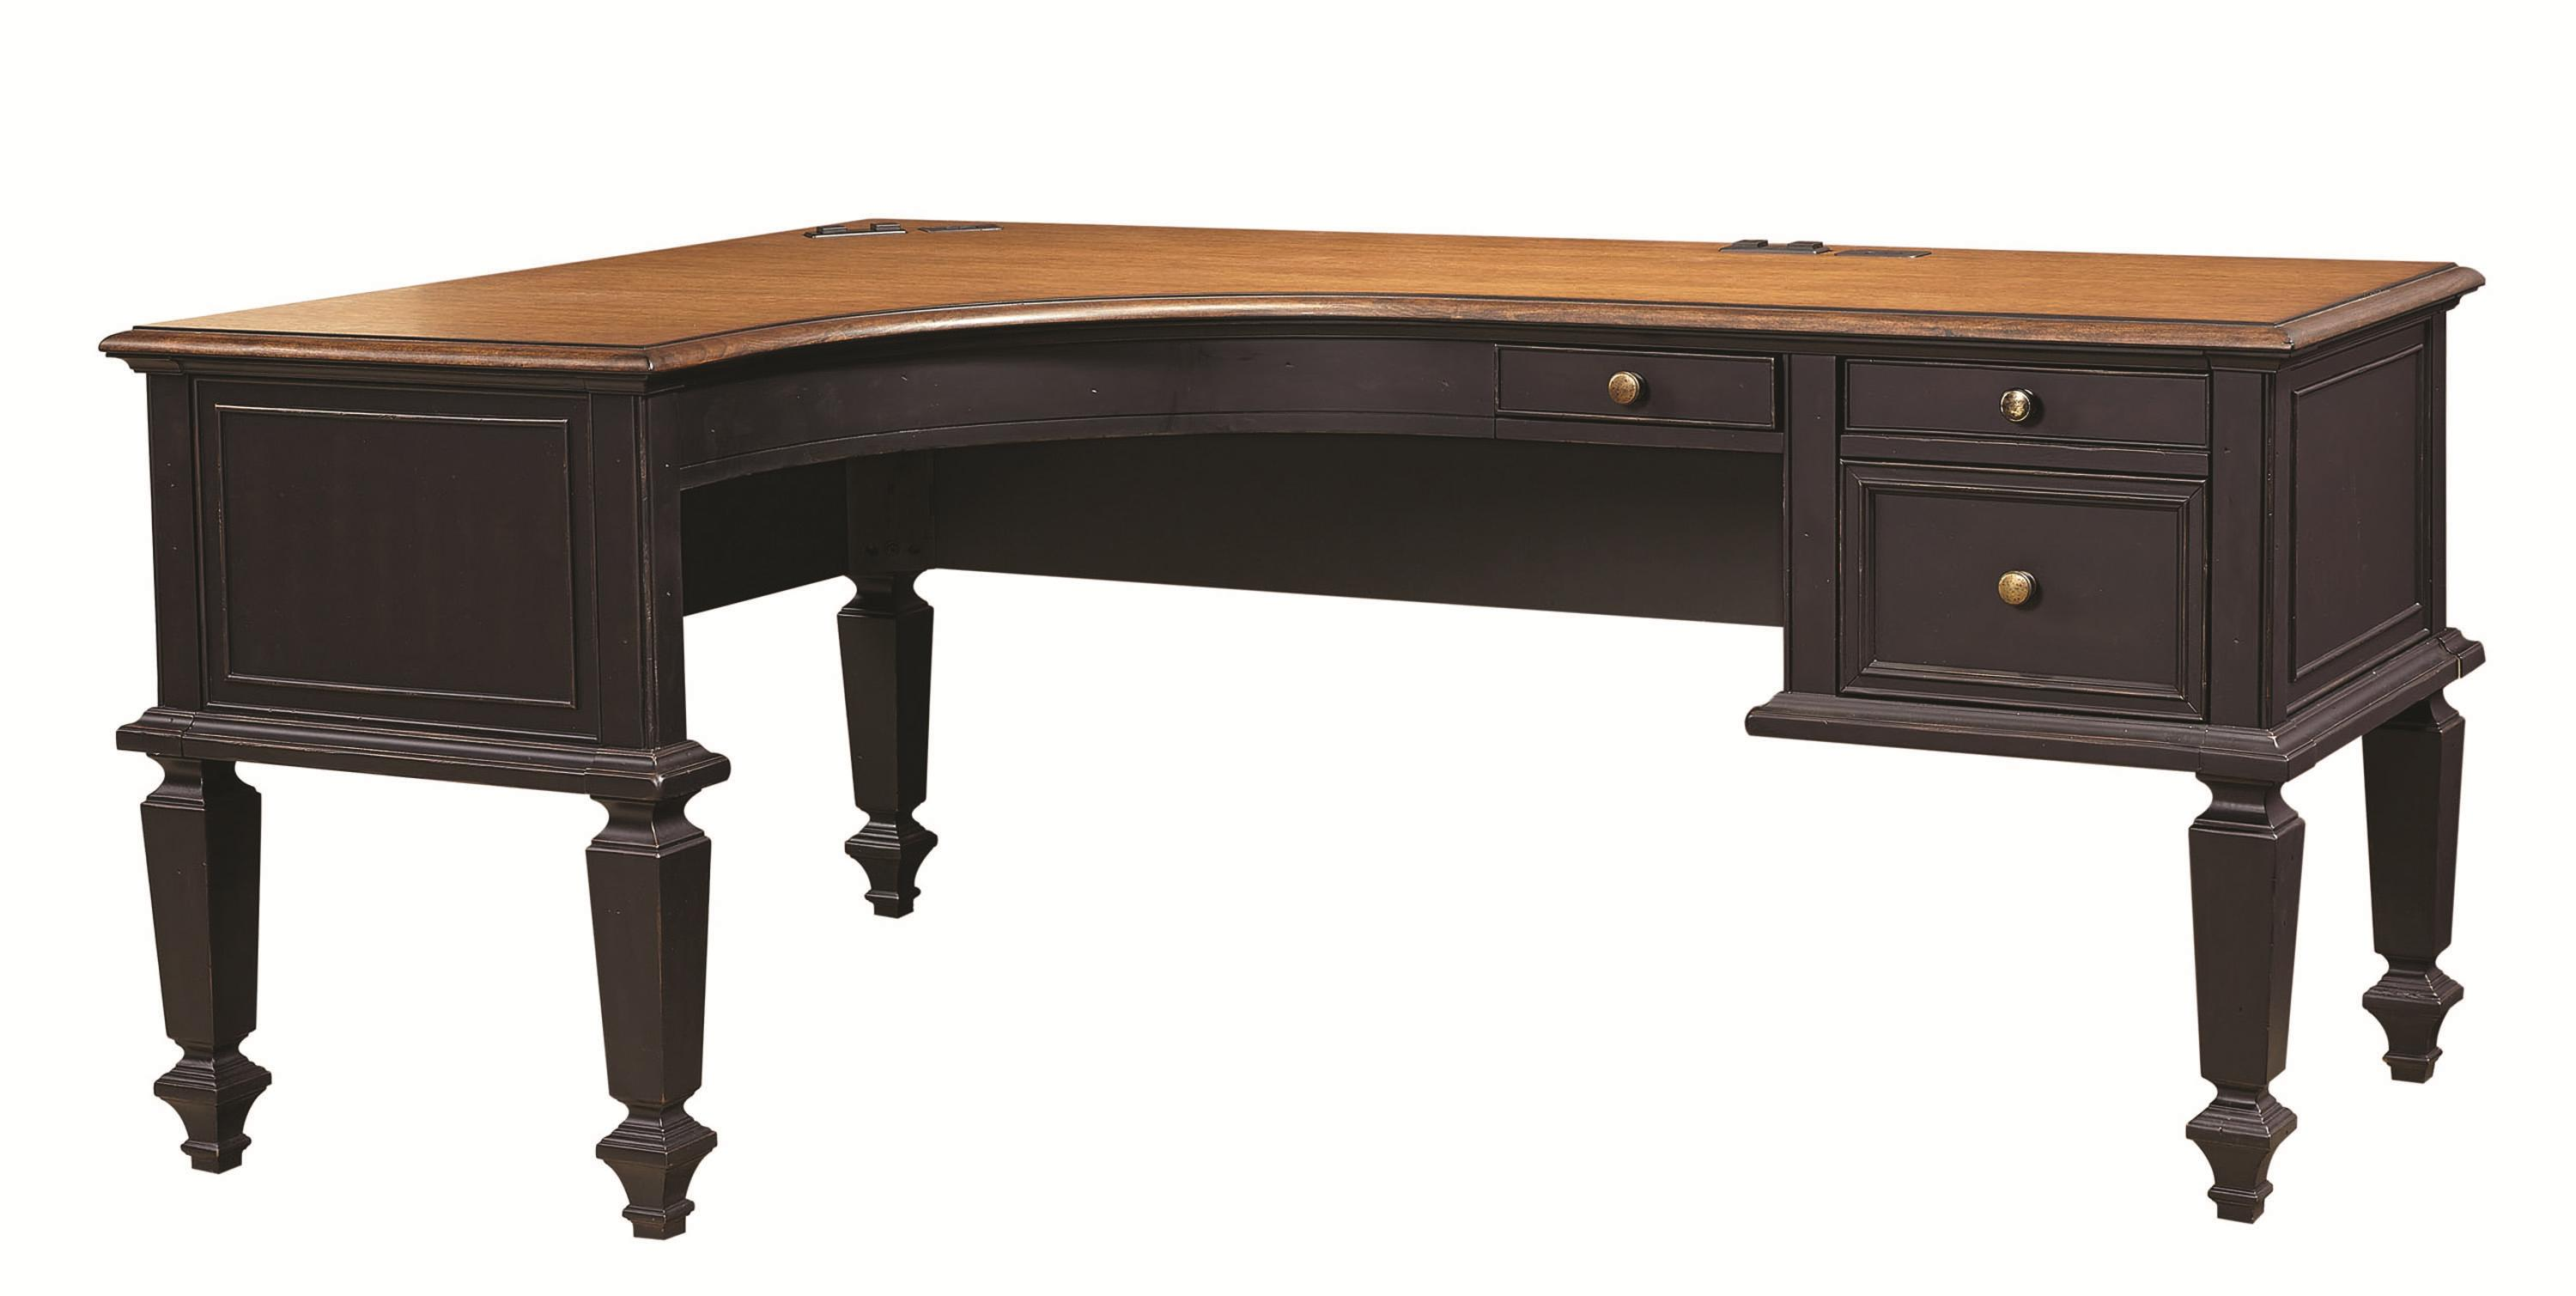 Aspenhome Ravenwood L-Shaped Desk - Item Number: I65-372